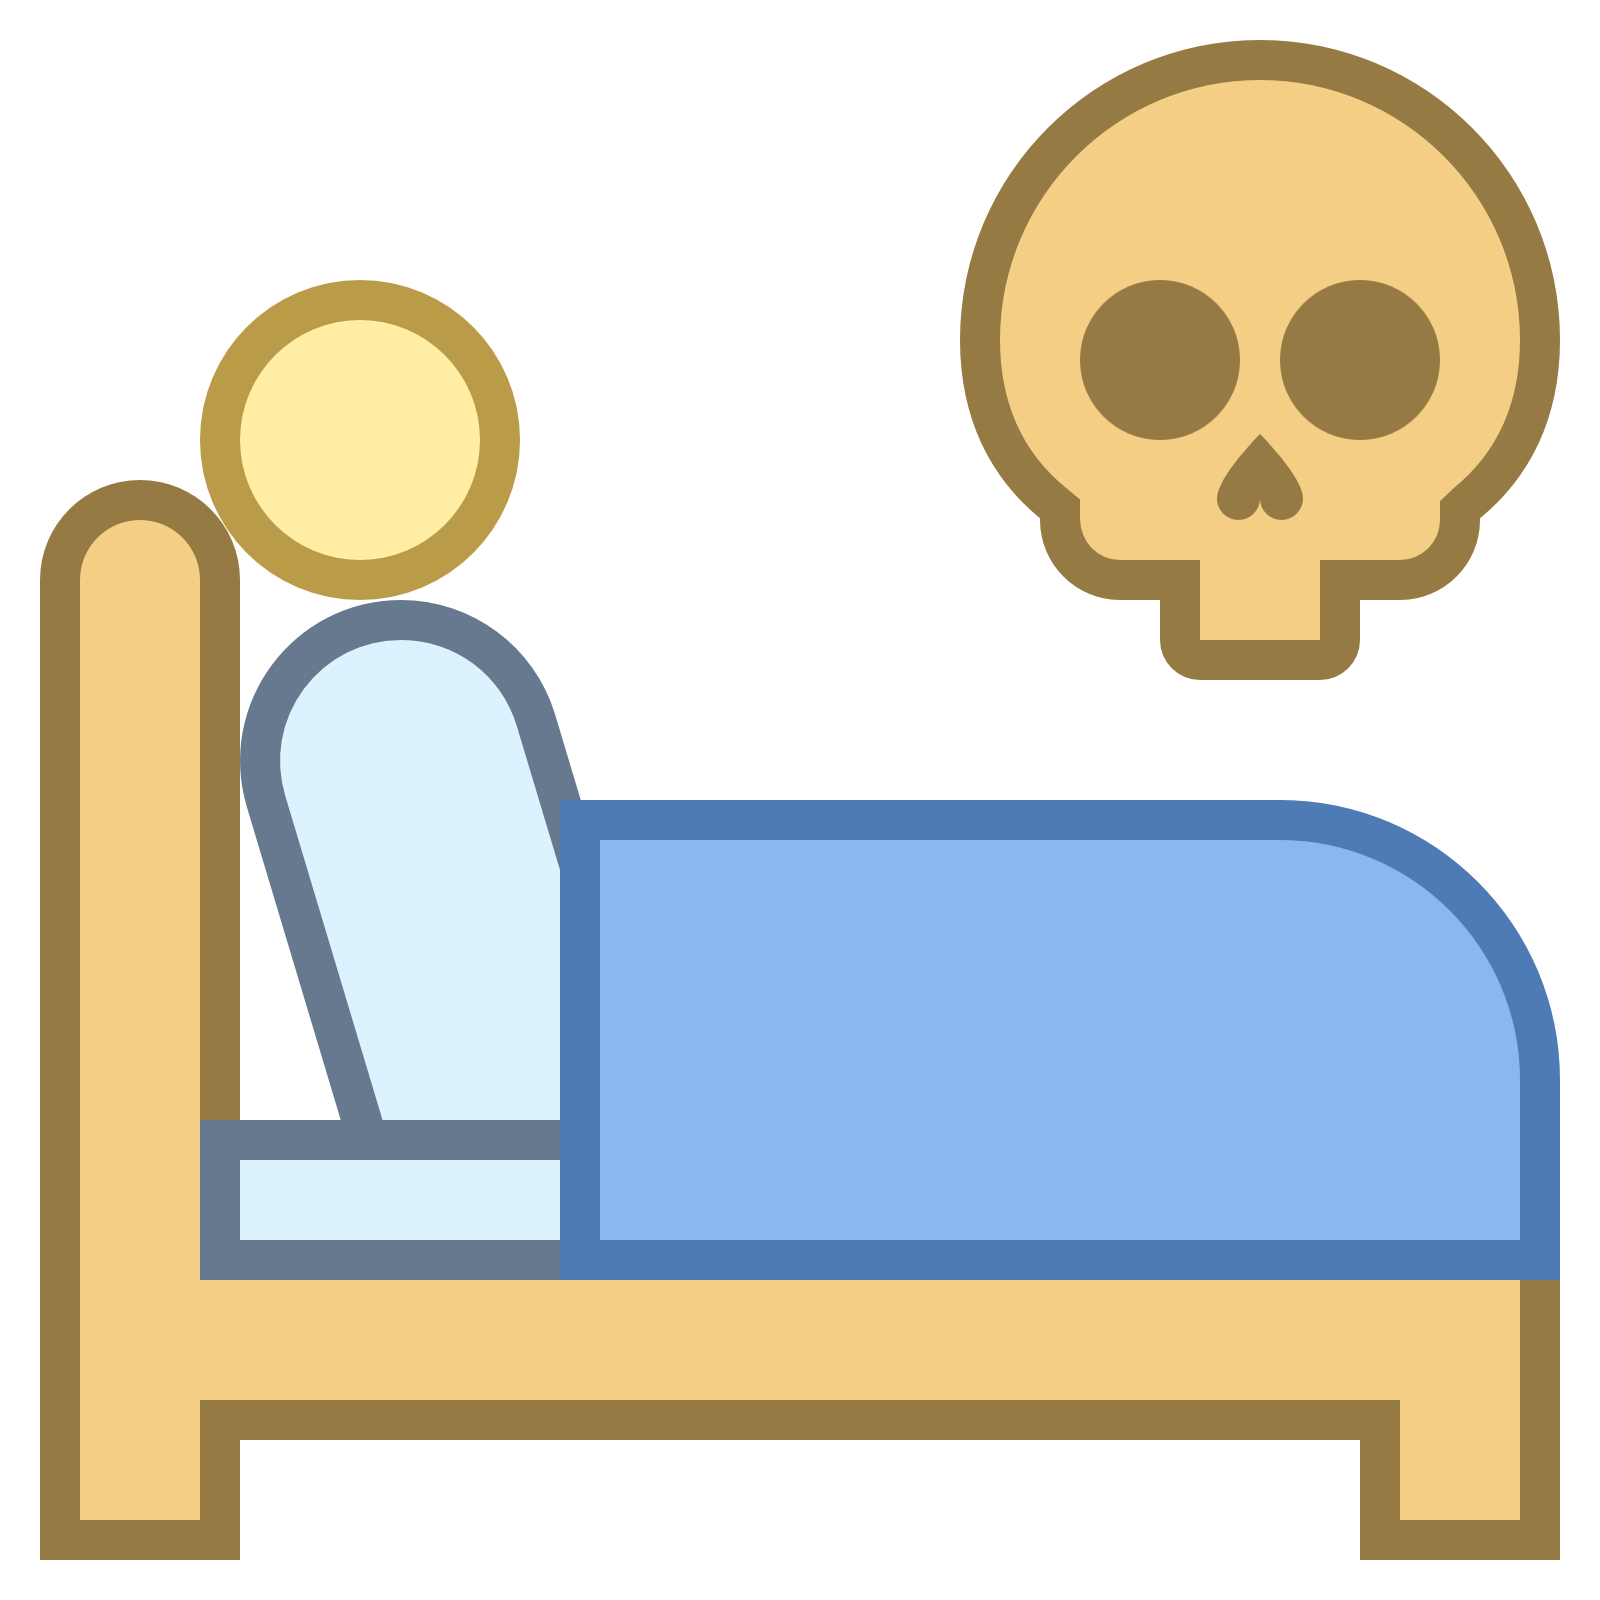 Clipart bed blue. To die collection in